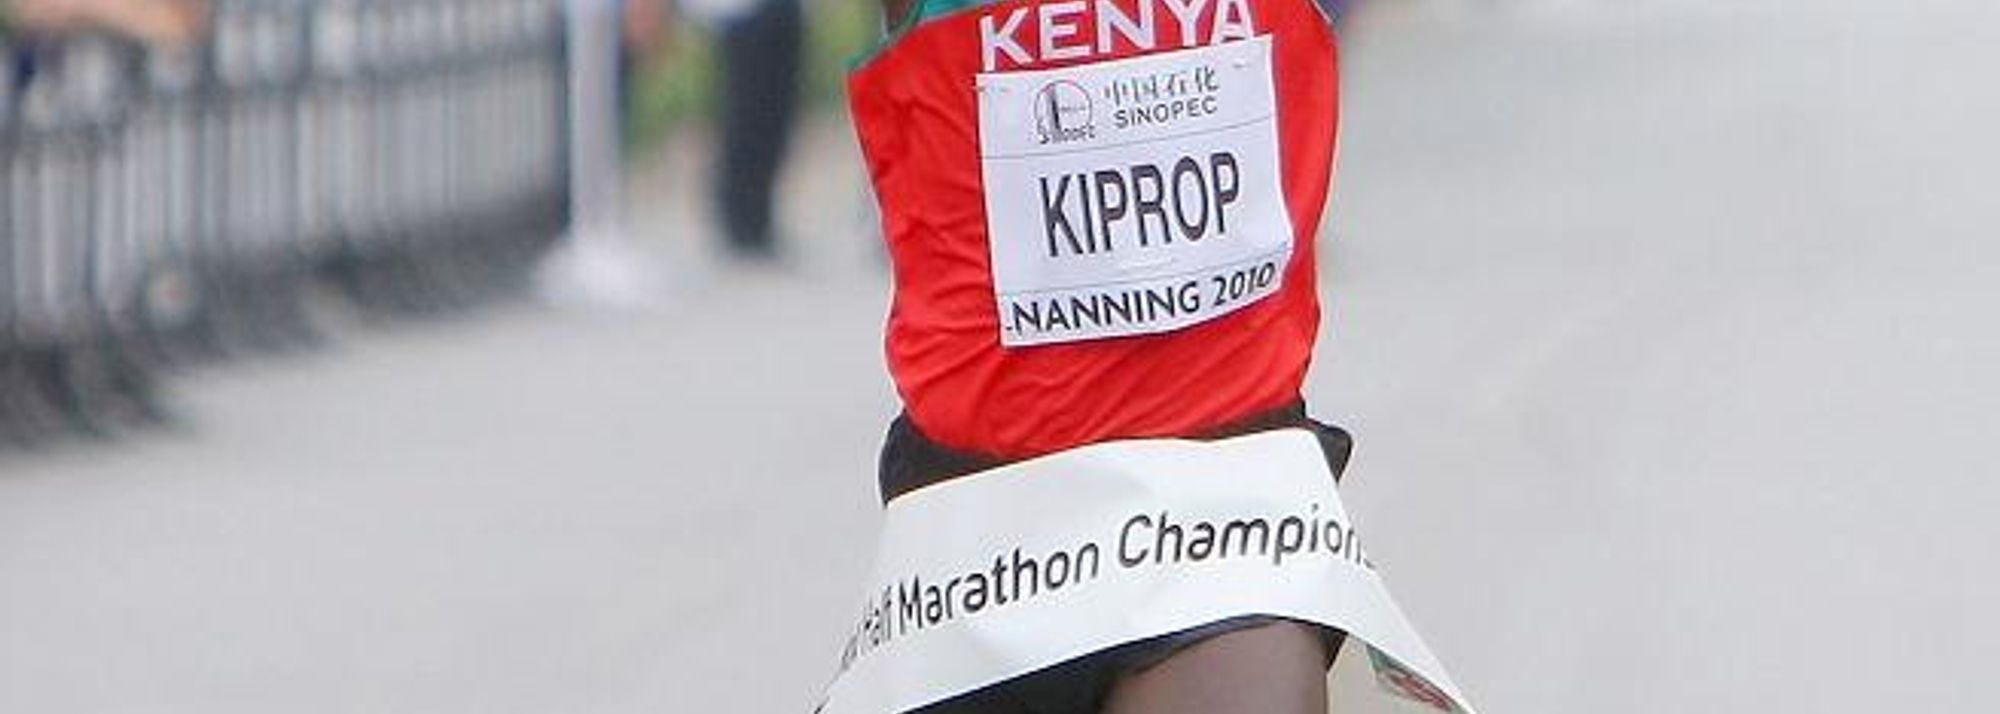 Nanning, China – When Wilson Kiprop claimed the World title today (16) at the IAAF / SINOPEC World Half Marathon Championships, he not only ended Zersenay Tadese's four year reign as the world's premiere Half Marathoner. The 23-year-old joined his compatriot Florence Kiplagat on the top step of the Nanning podium to complete the first national double victory at these championships since 1999.<BR>